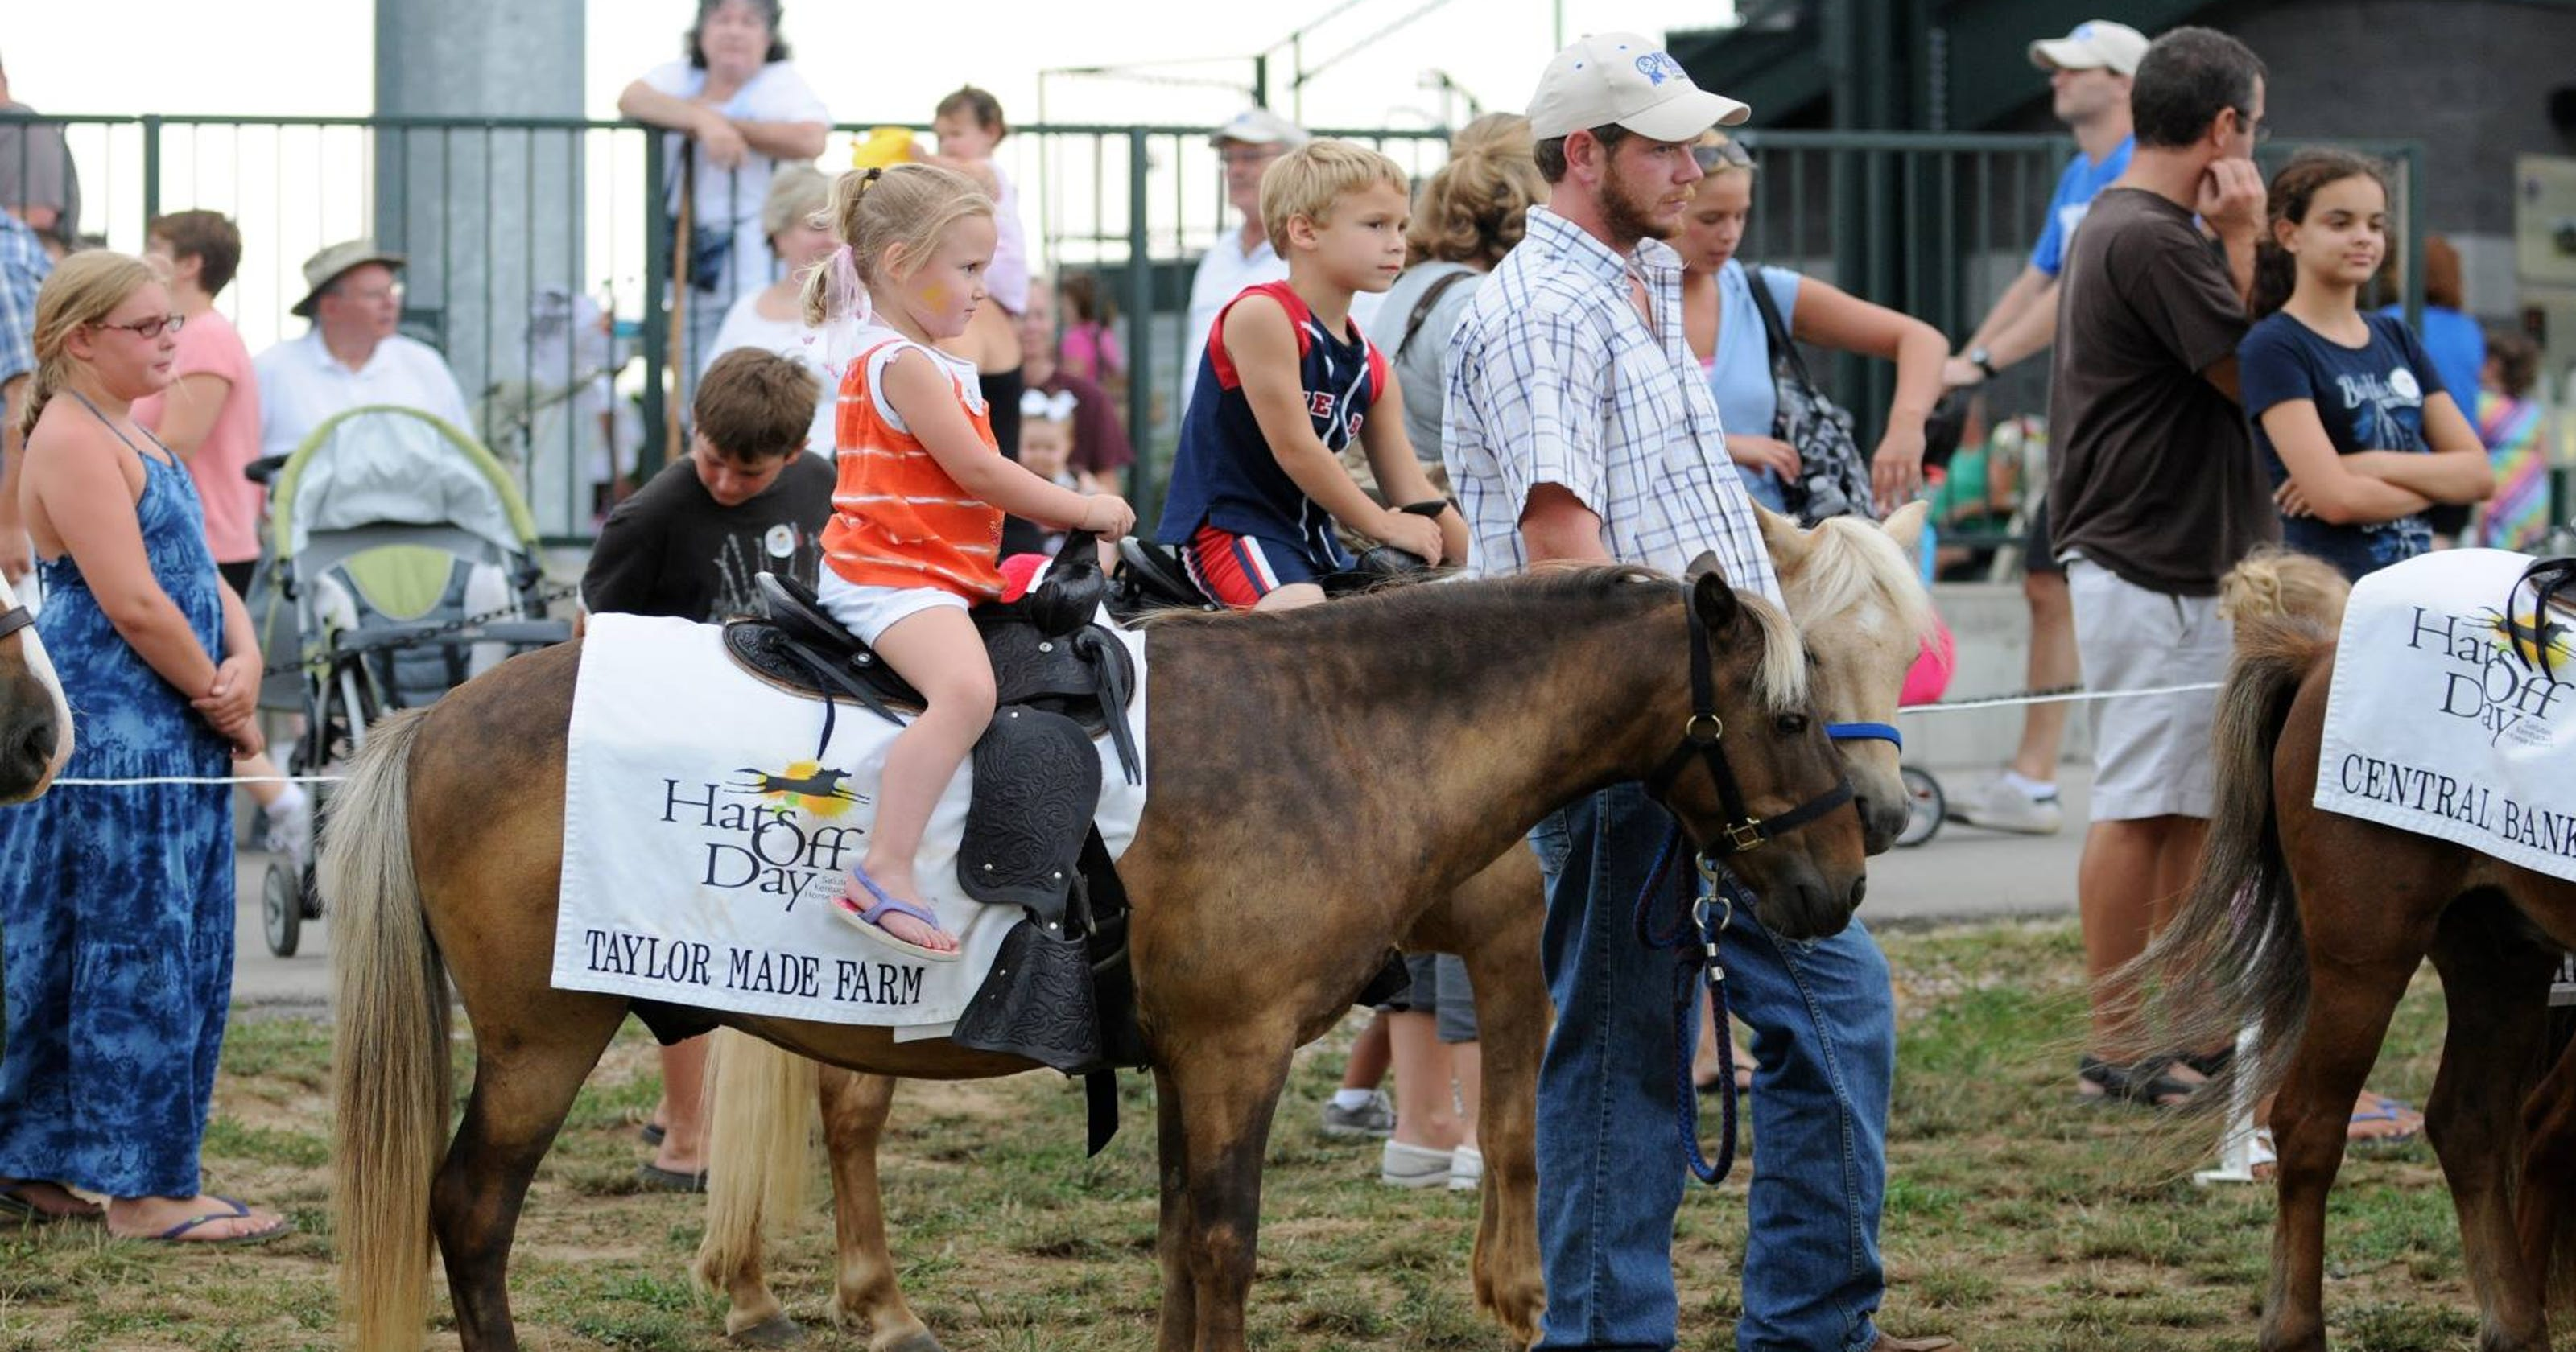 Hats Off' gives free admission to the Kentucky Horse Park